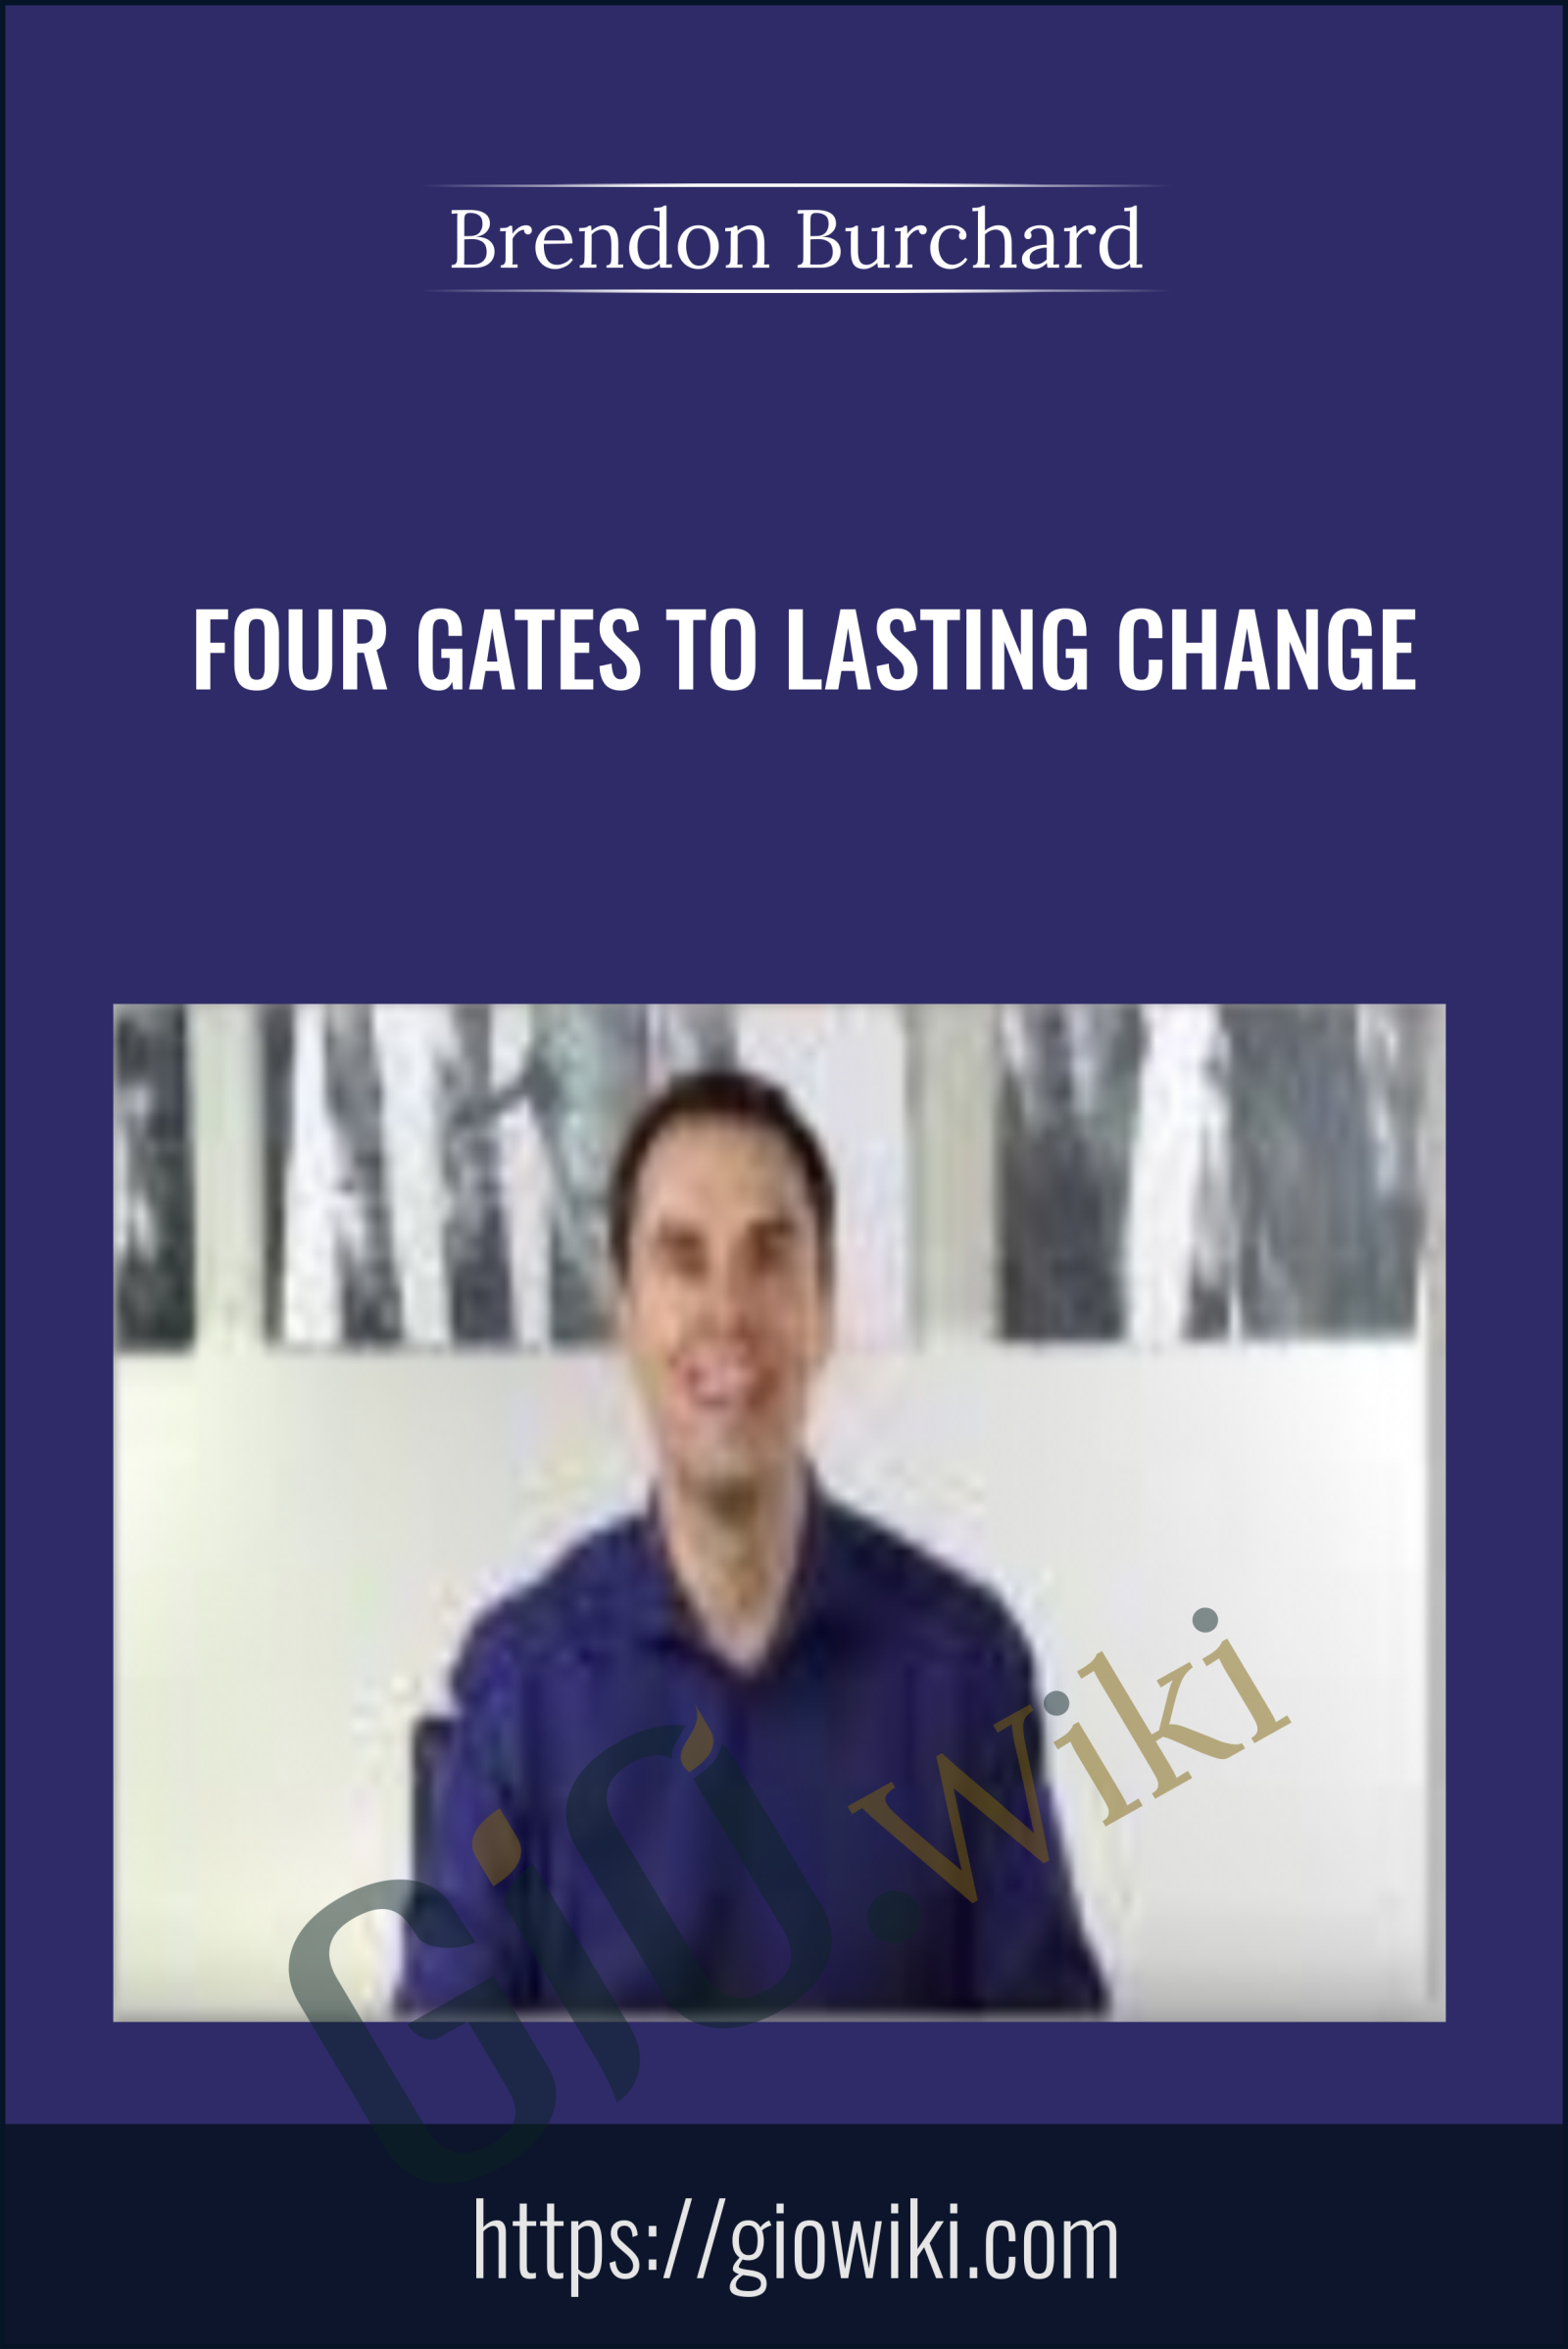 Four Gates to Lasting Change - Brendon Burchard